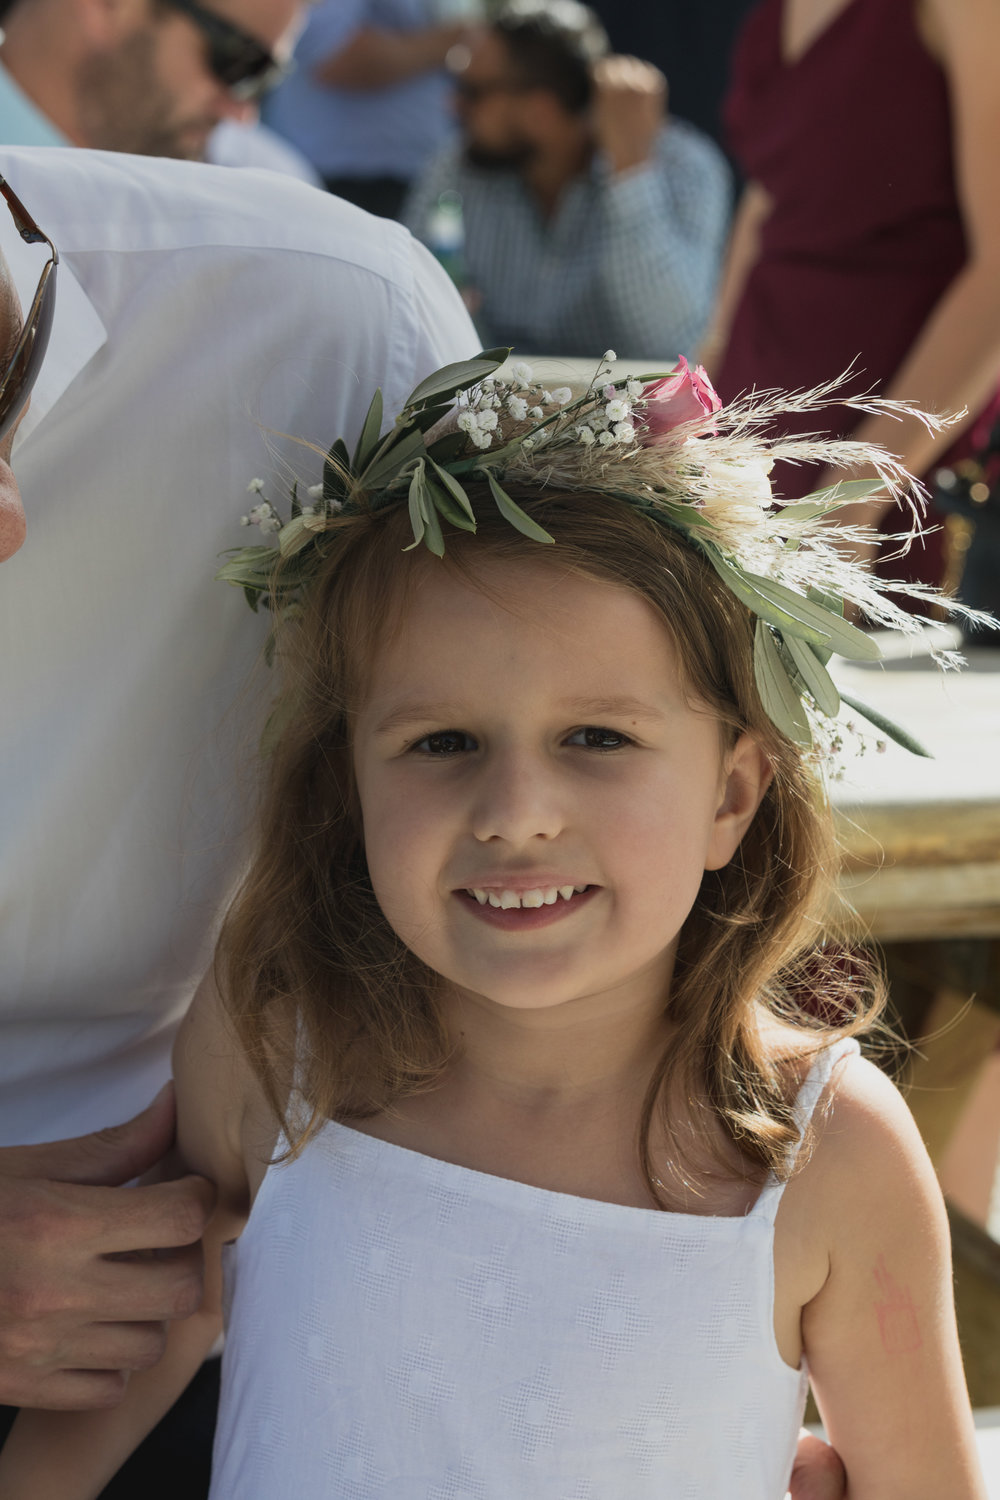 wedding-at-the-red-barn-new-zealand-wedding-photographer-flower-girl-wearing-flower-crown.jpg